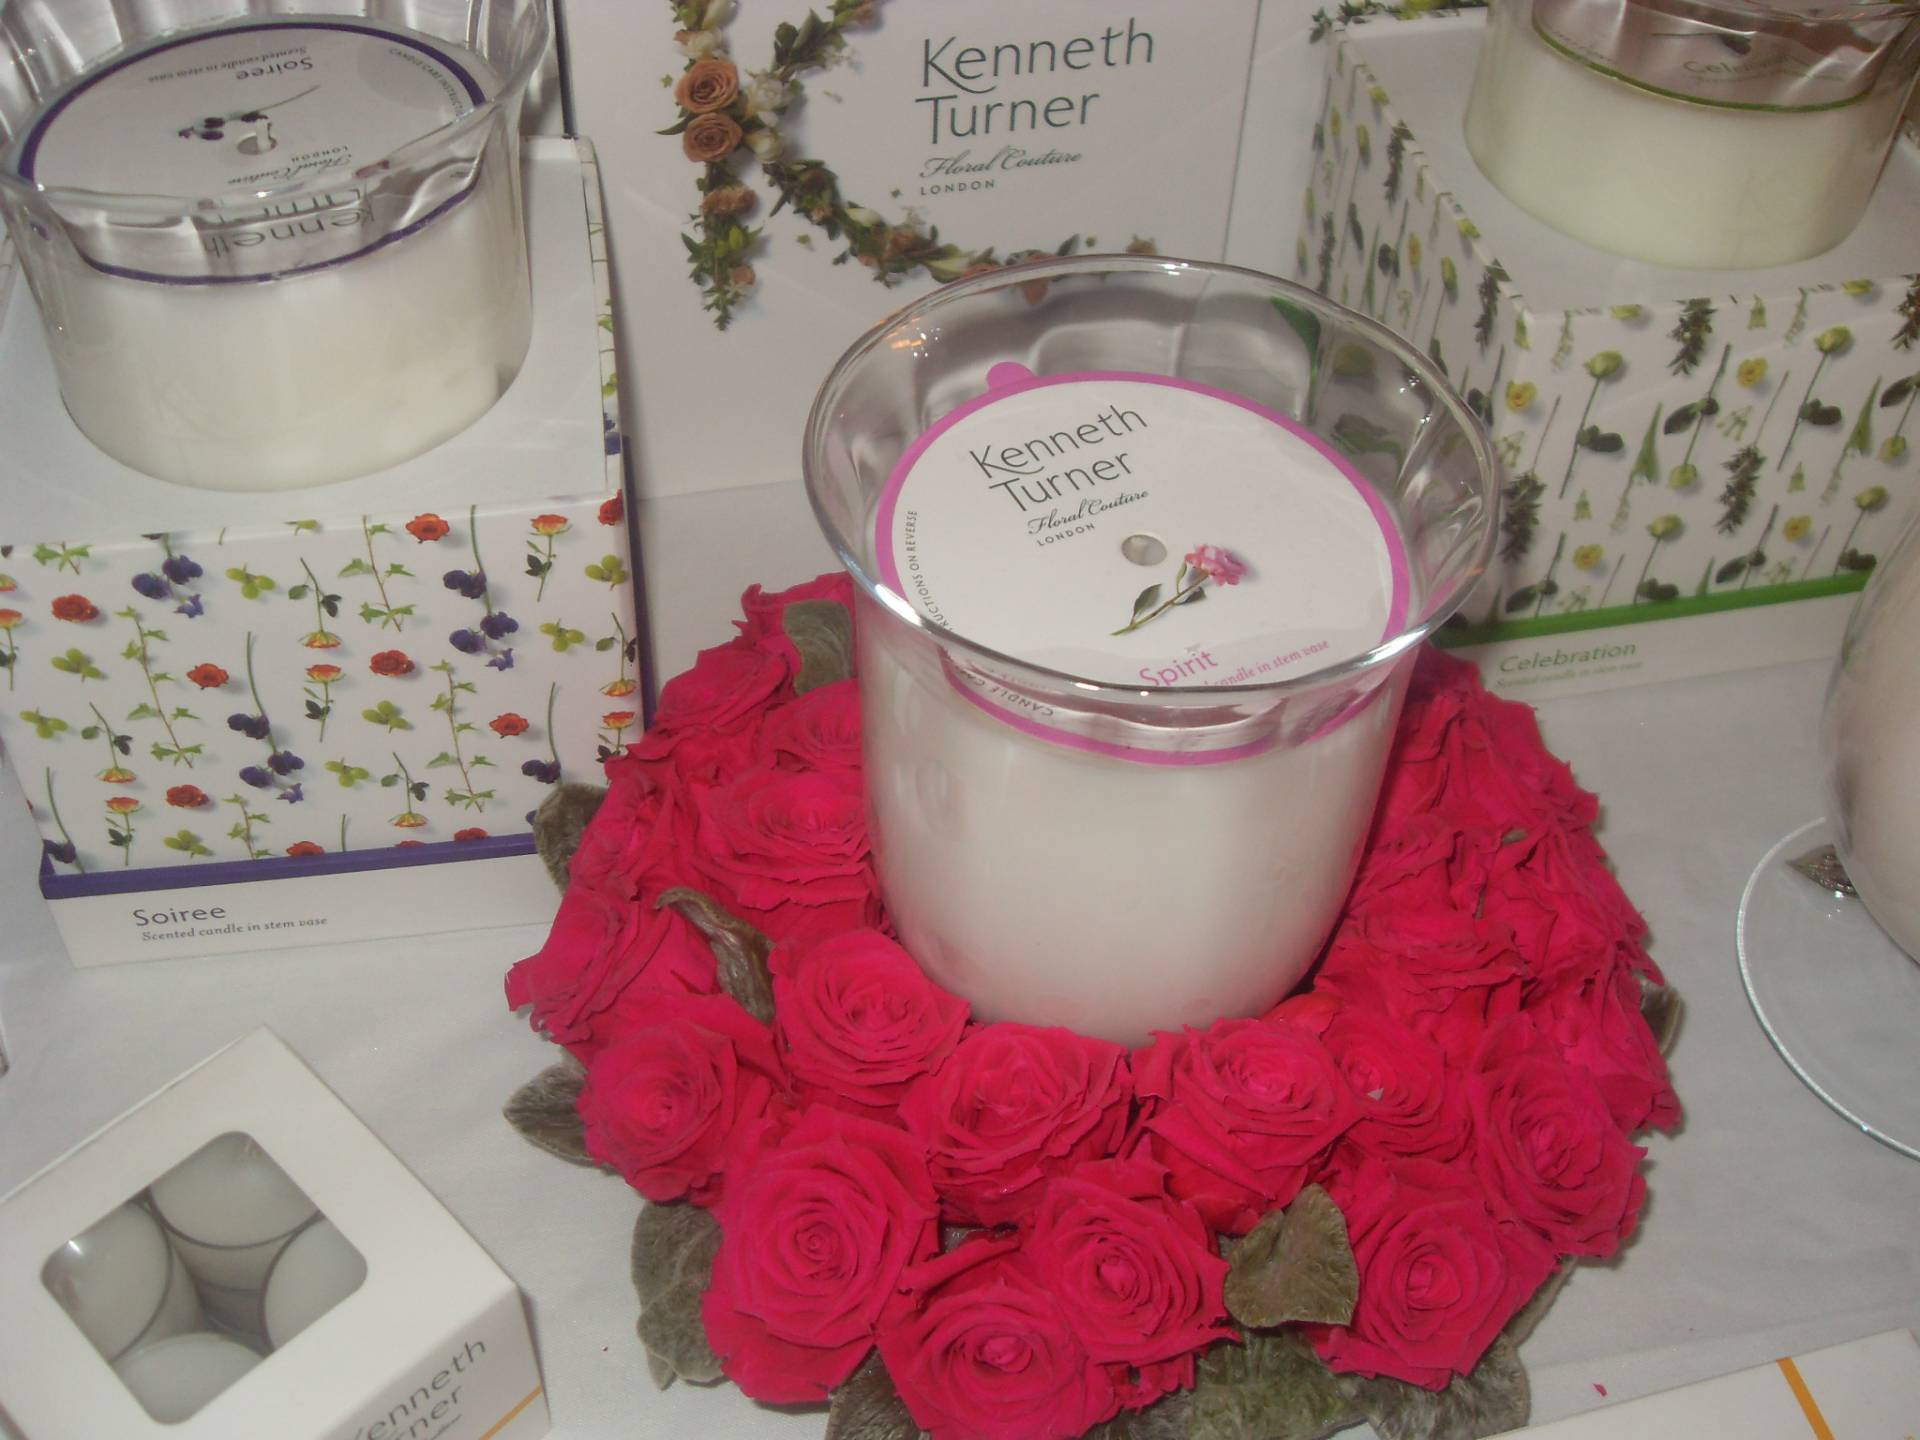 Kenneth Turner Candle